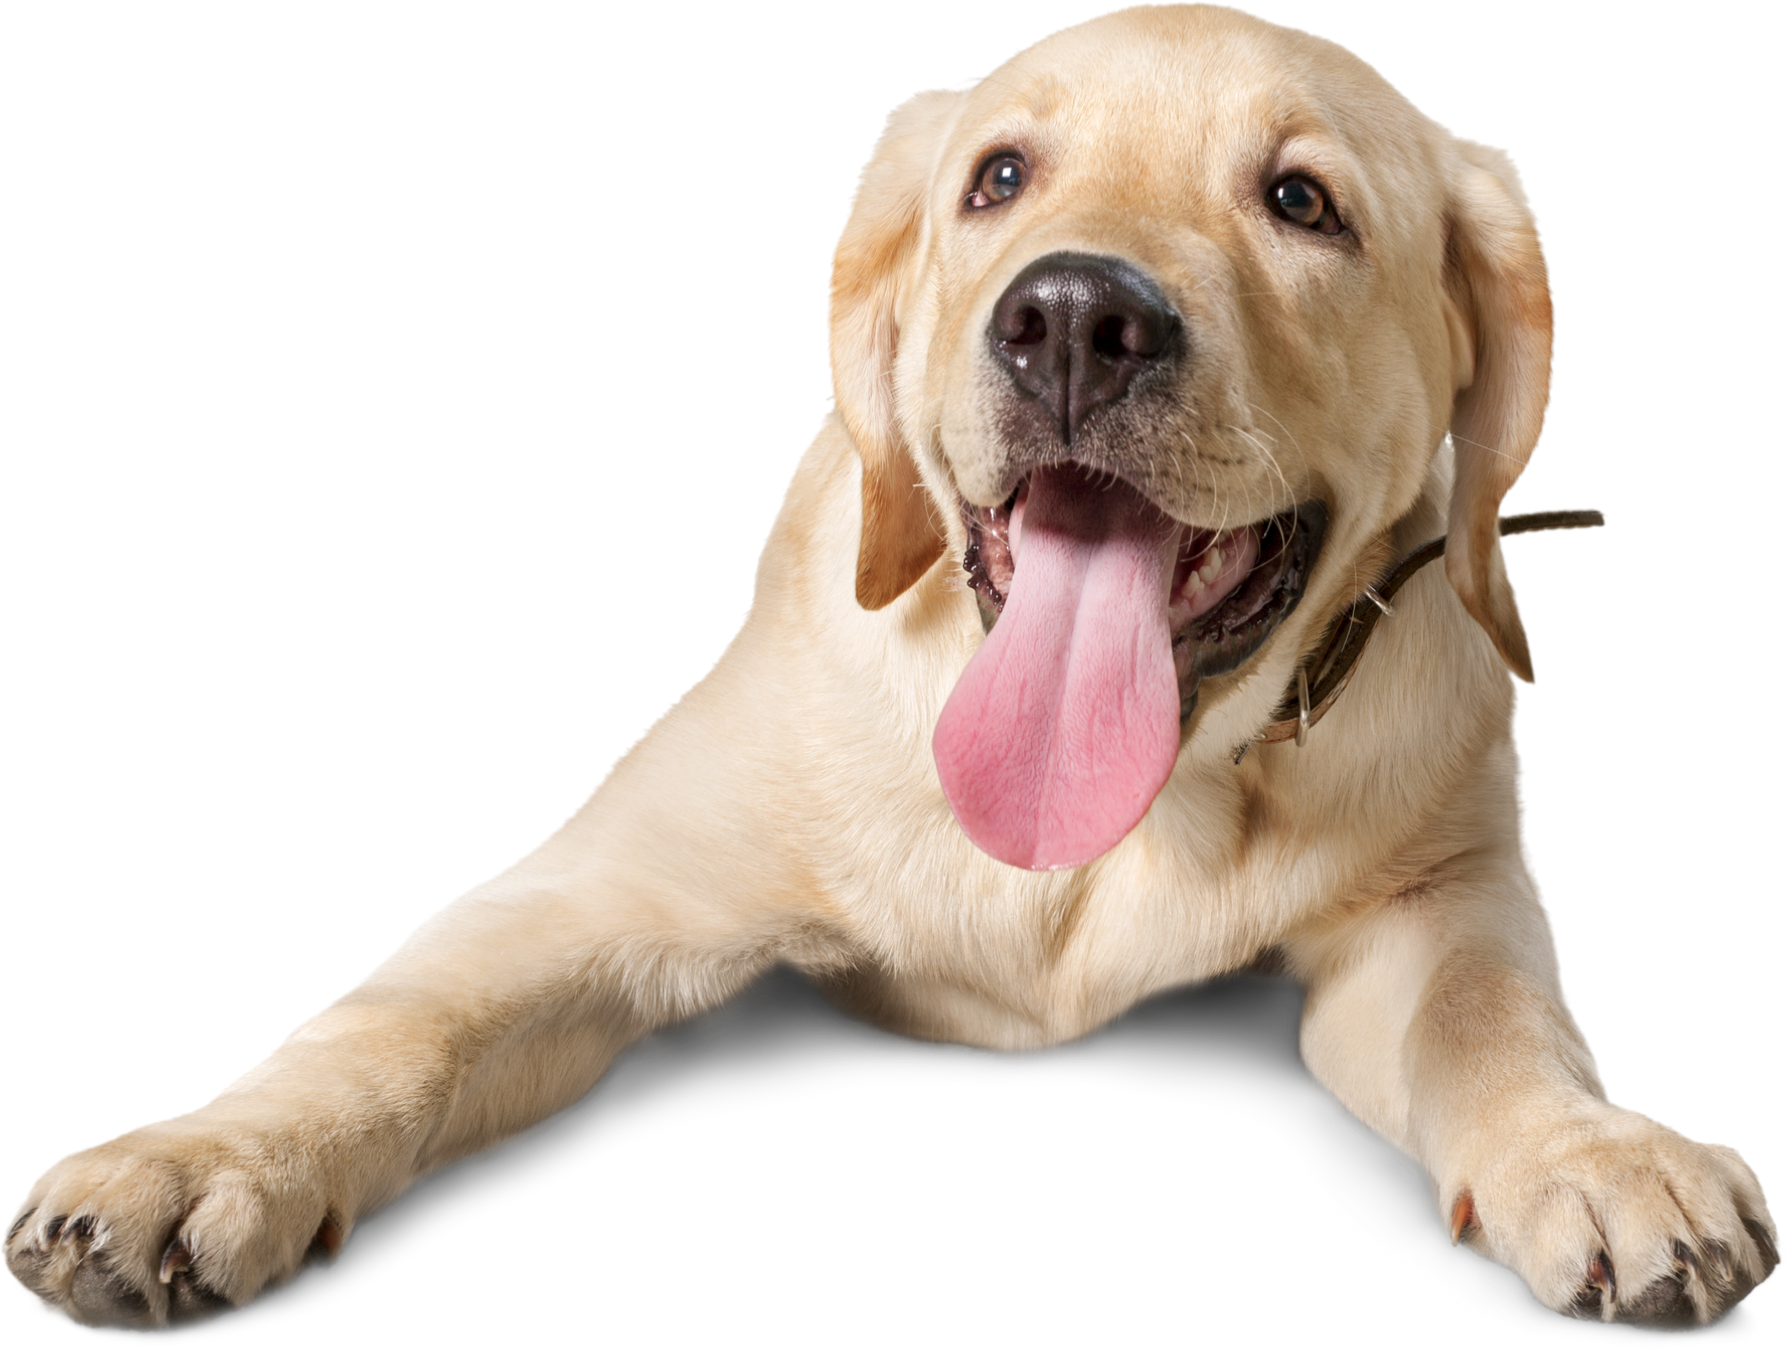 Labrador with his tongue lolling out